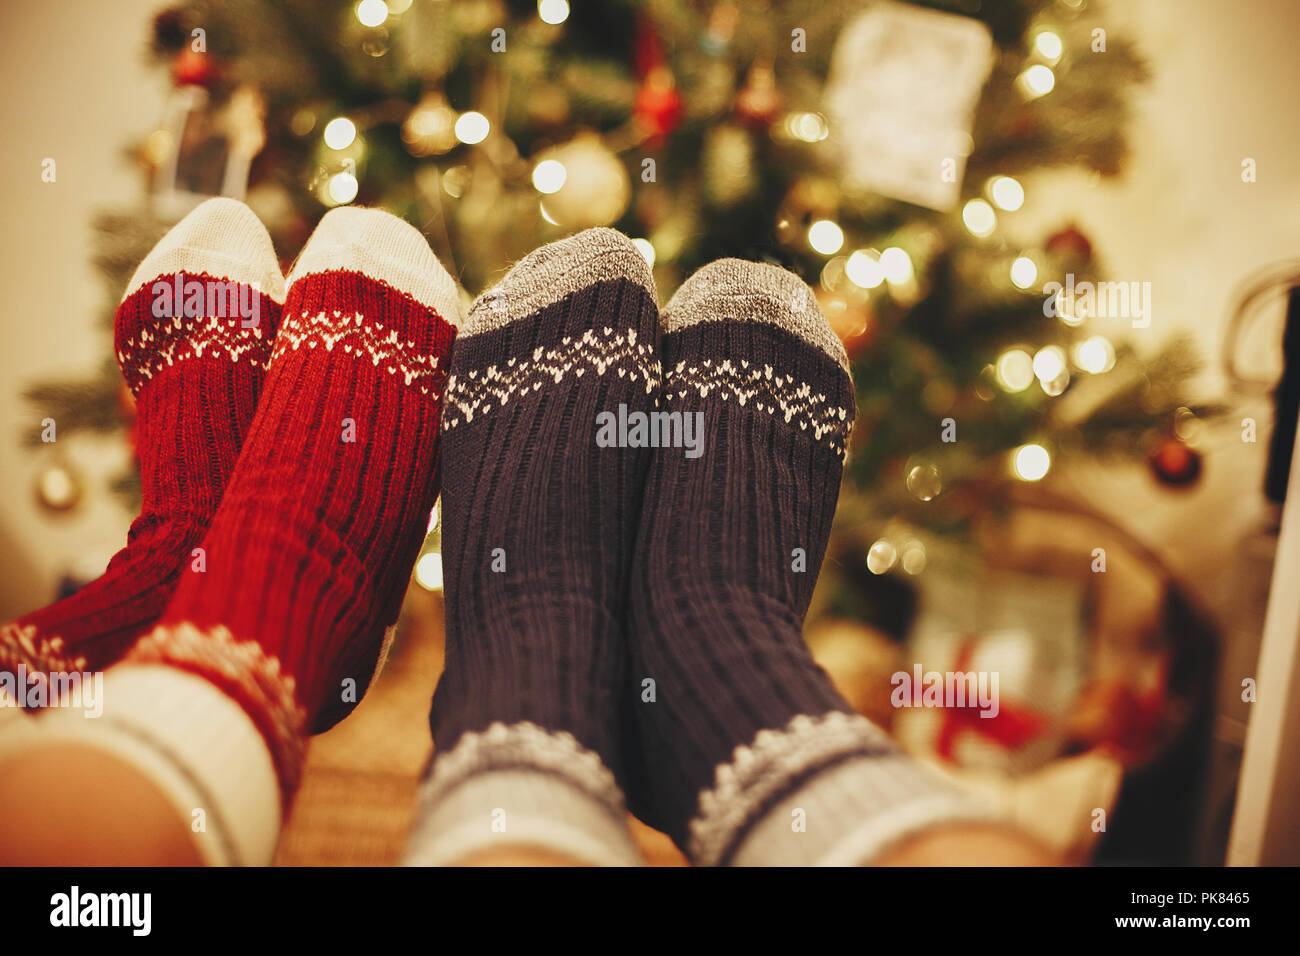 stylish festive socks on couple legs on background of golden ...